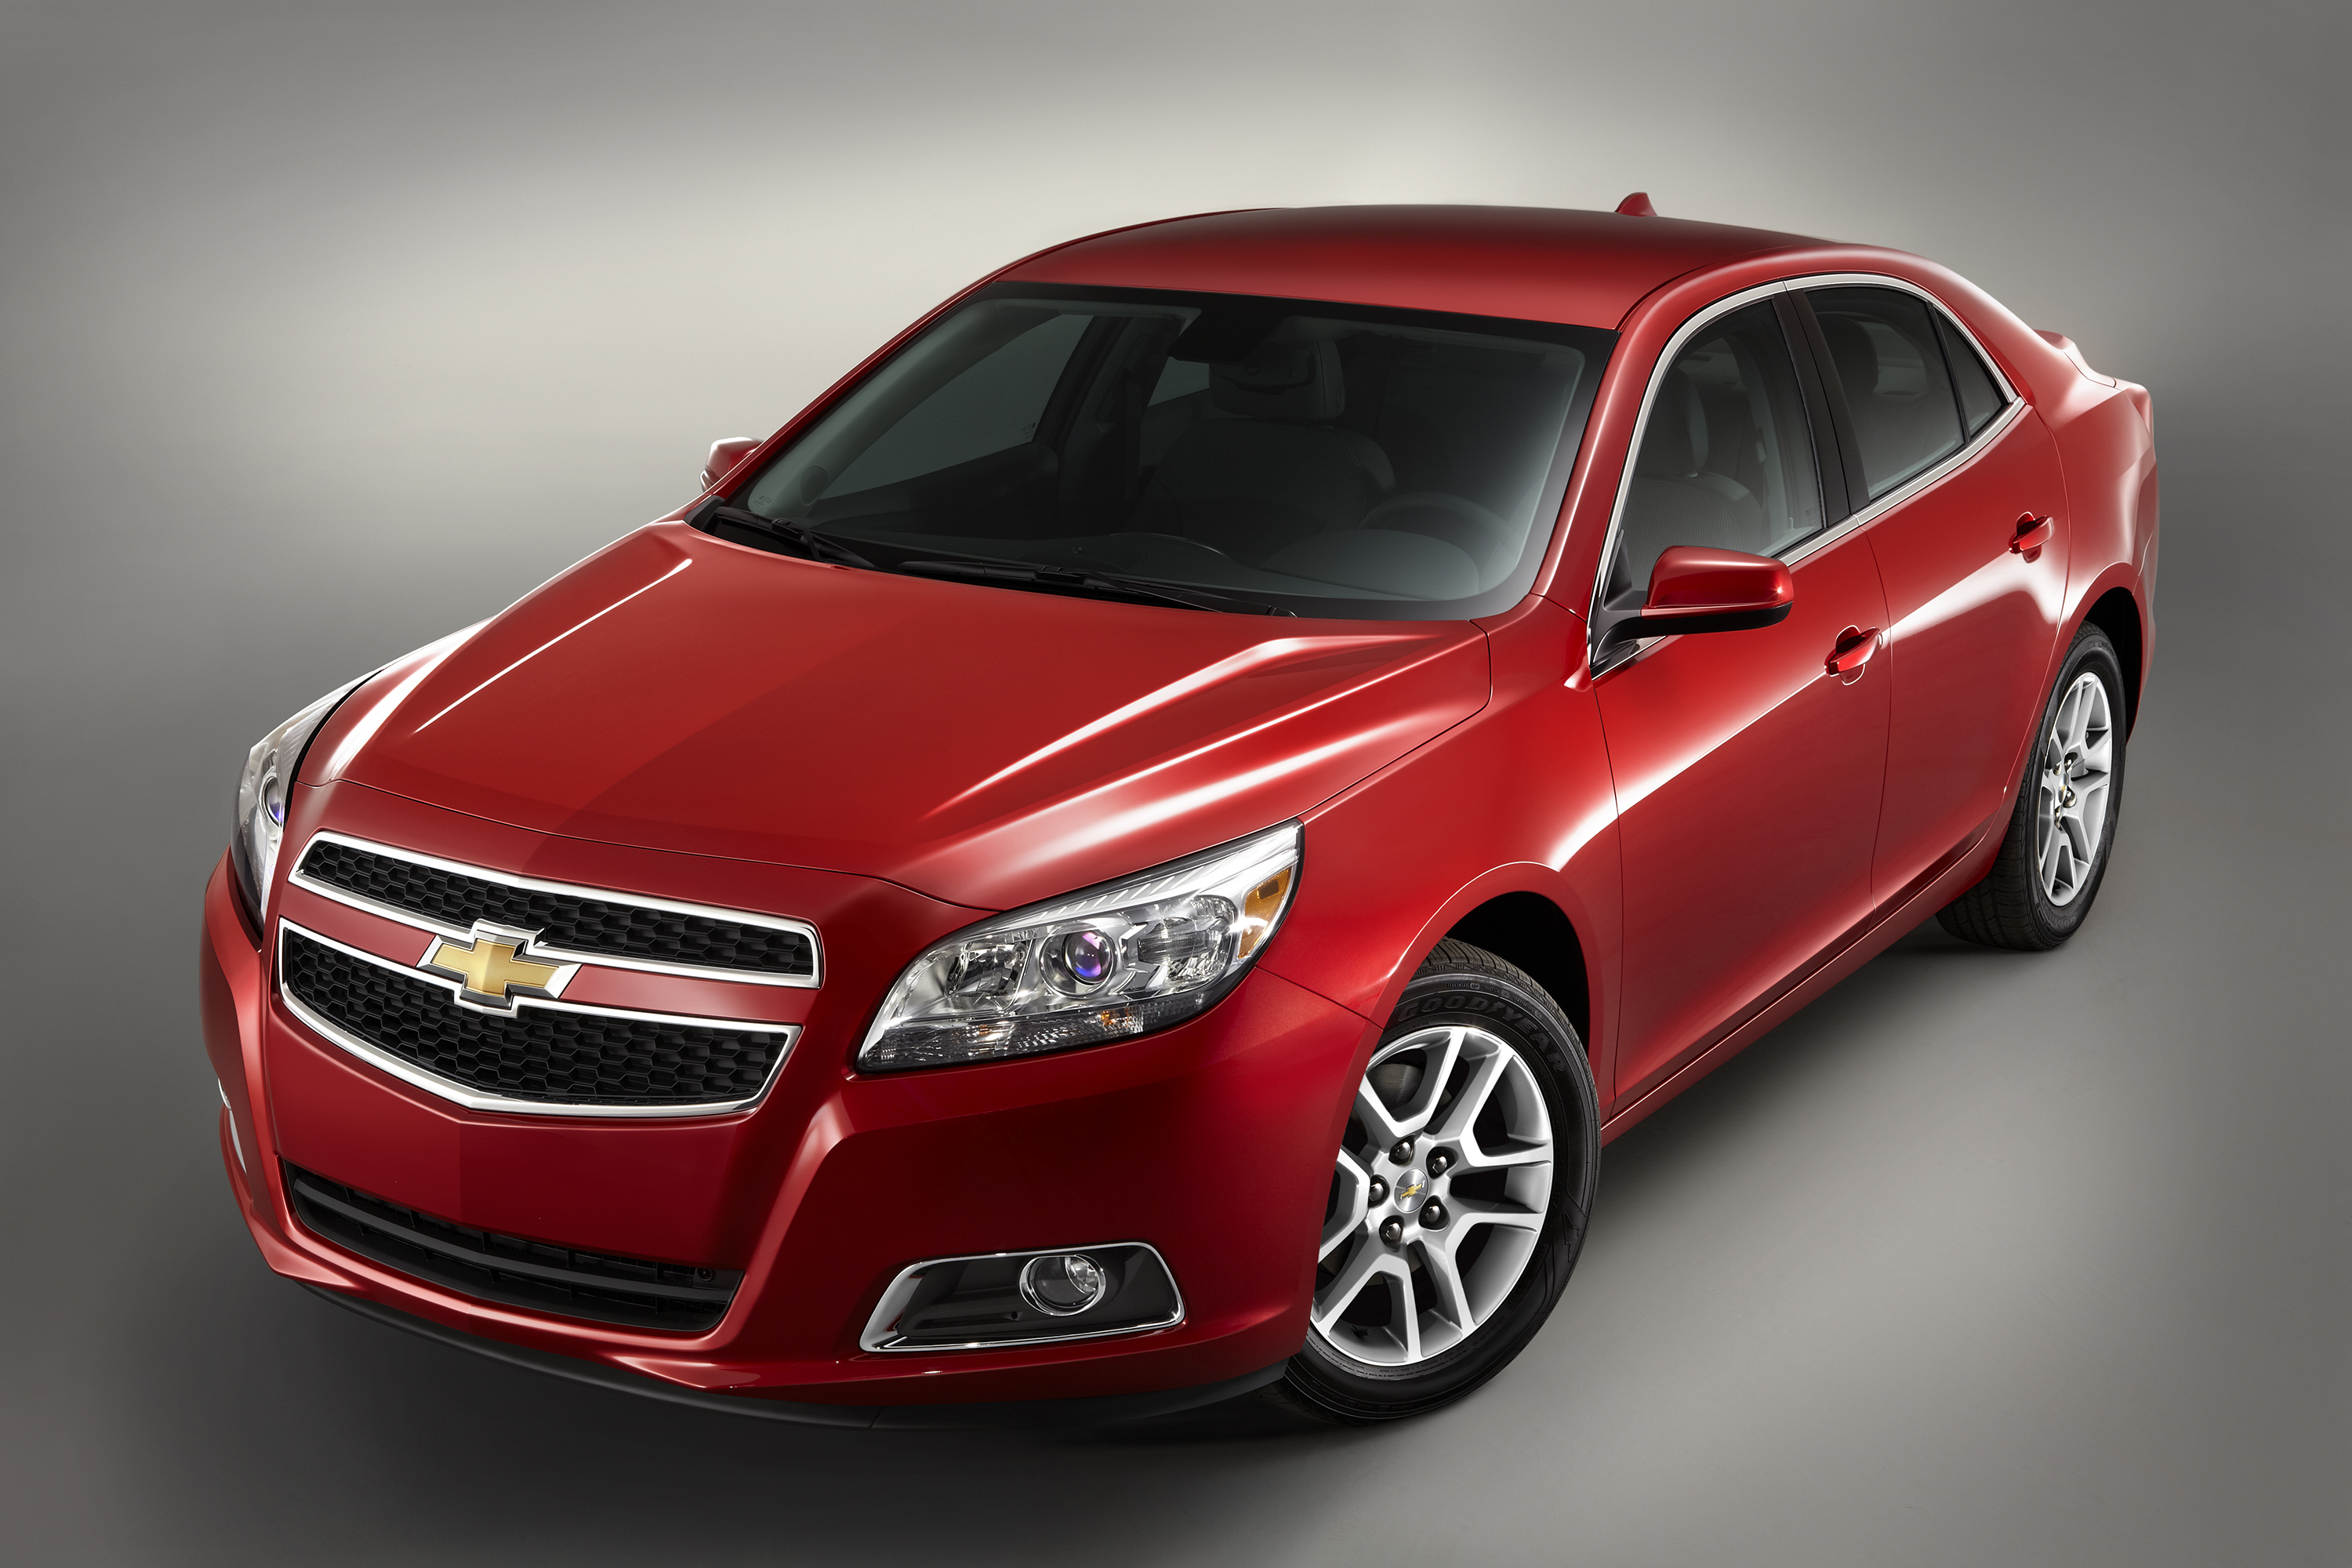 2013 Chevrolet Malibu Eco Priced Under 26000 2011 Chevy Cruze Battery Wiring Download The Photo Above